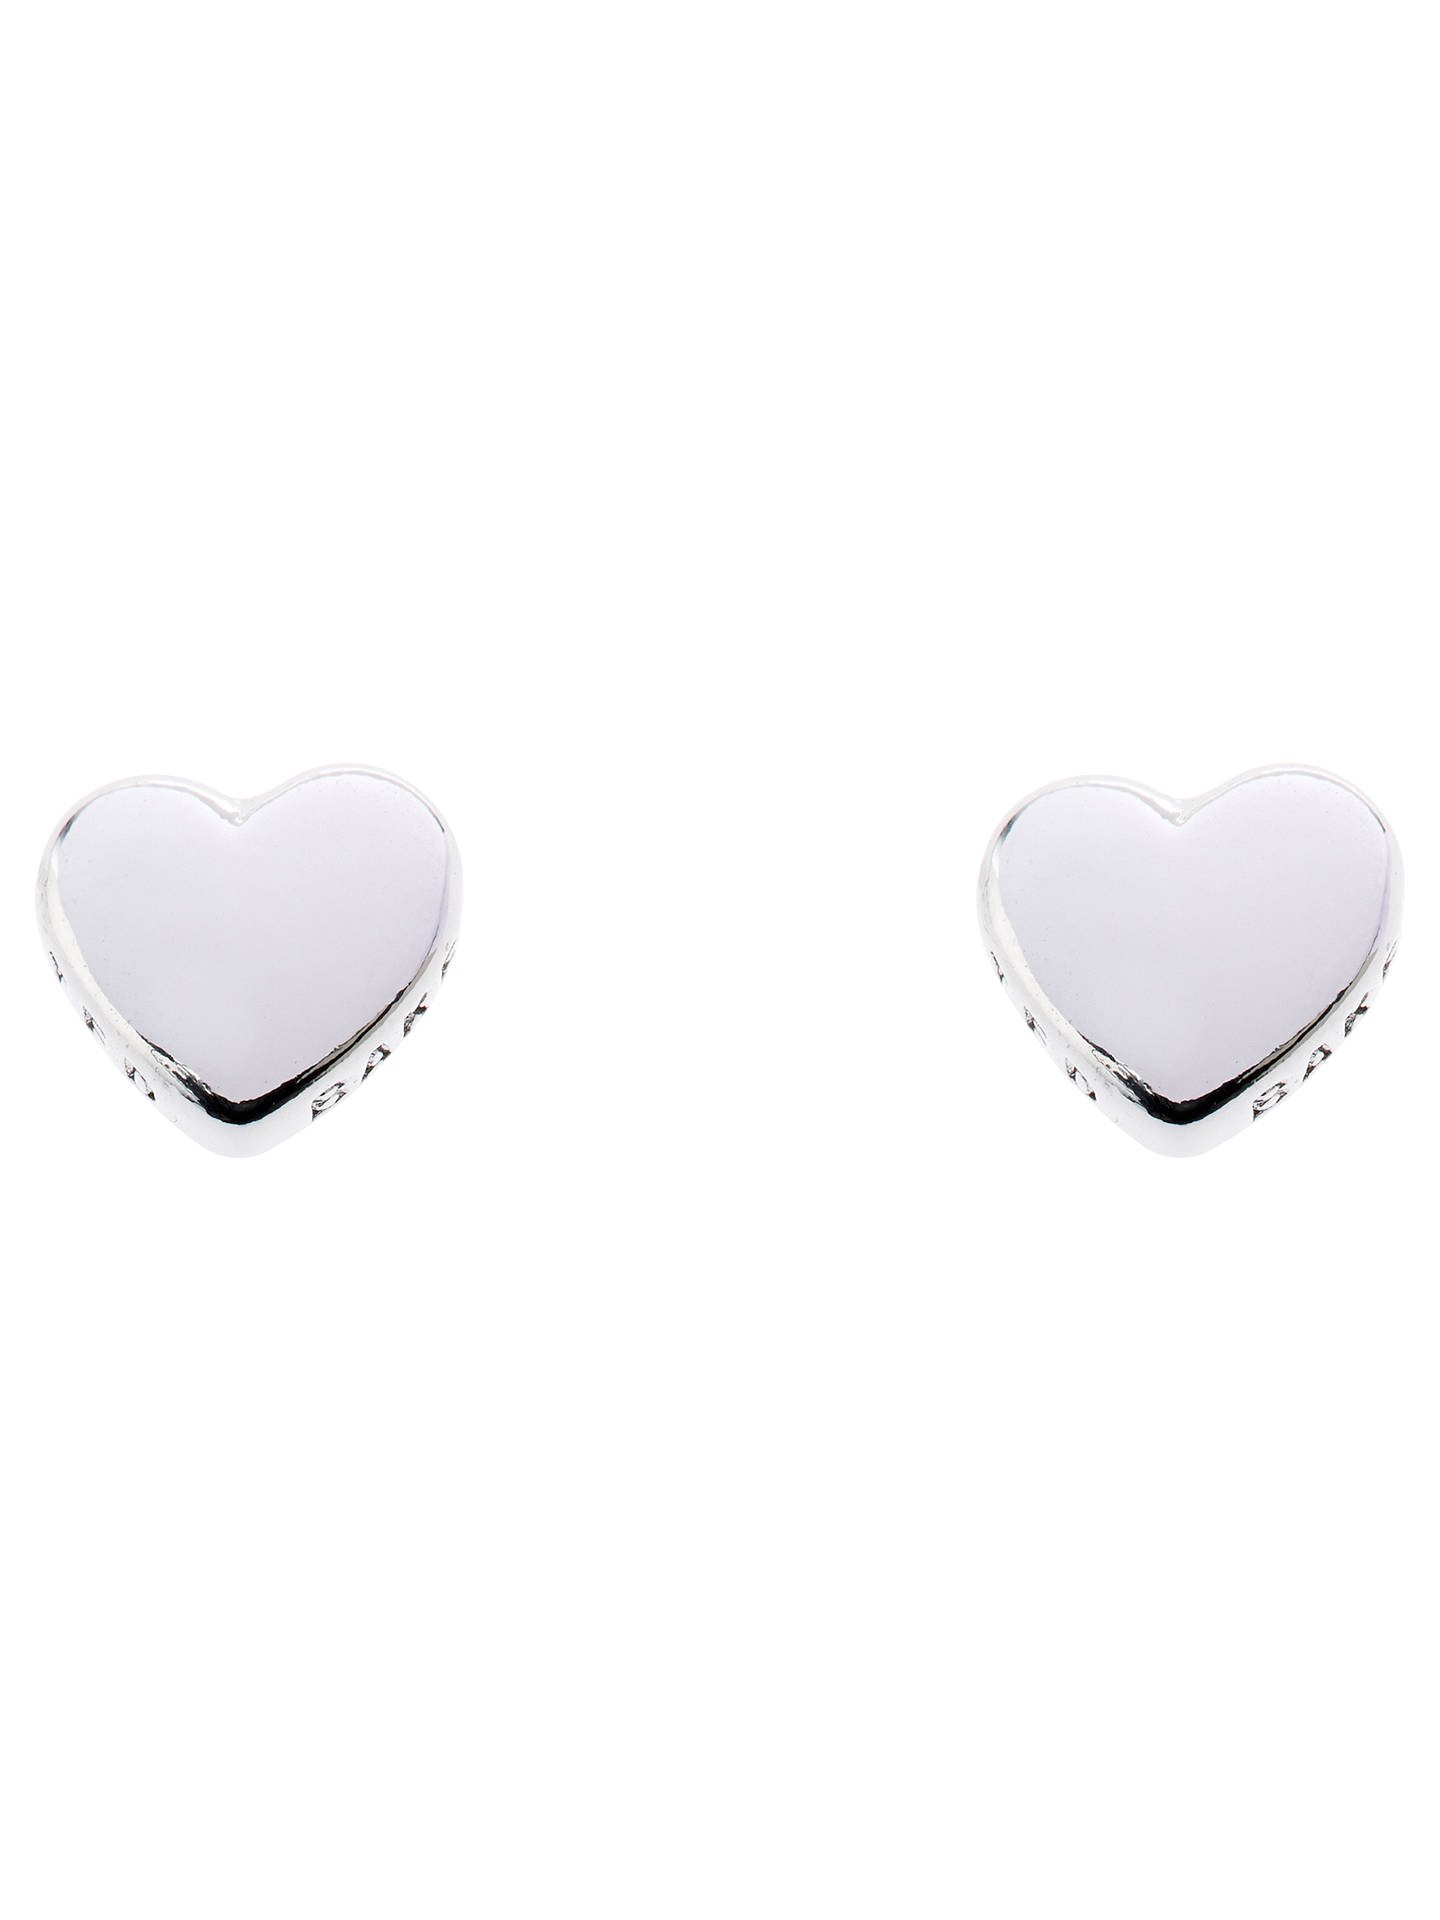 6daaf02df Buy Ted Baker Harly Tiny Heart Stud Earrings, Silver Online at  johnlewis.com ...